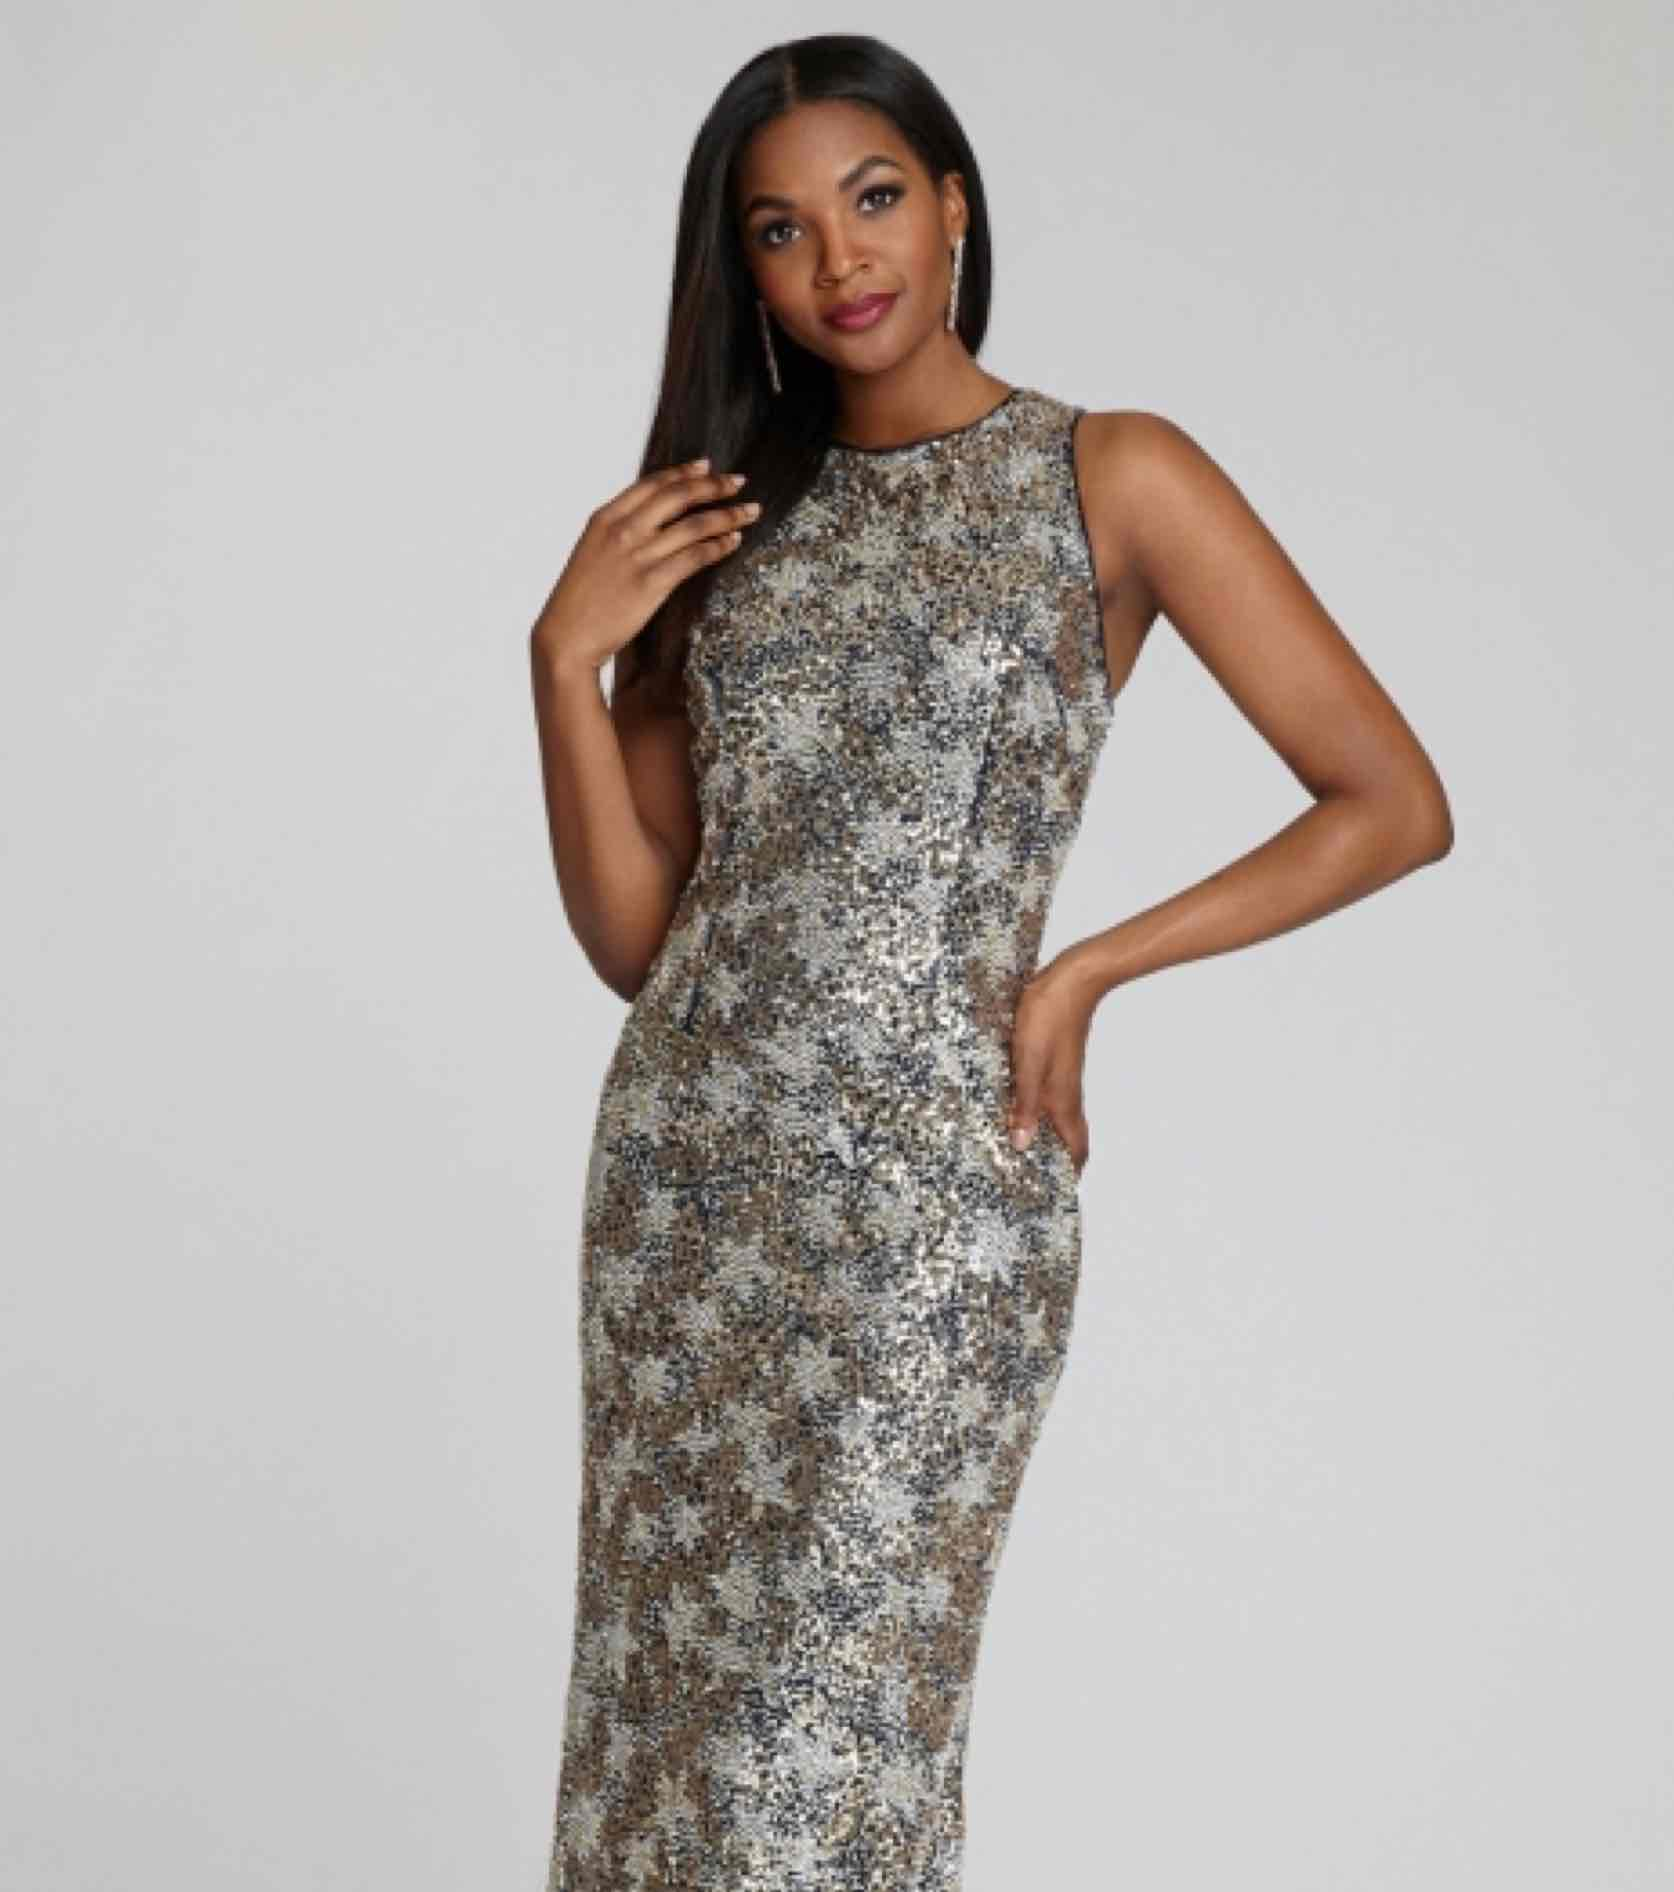 Model in silver shiny star patterned Teri Jon gown